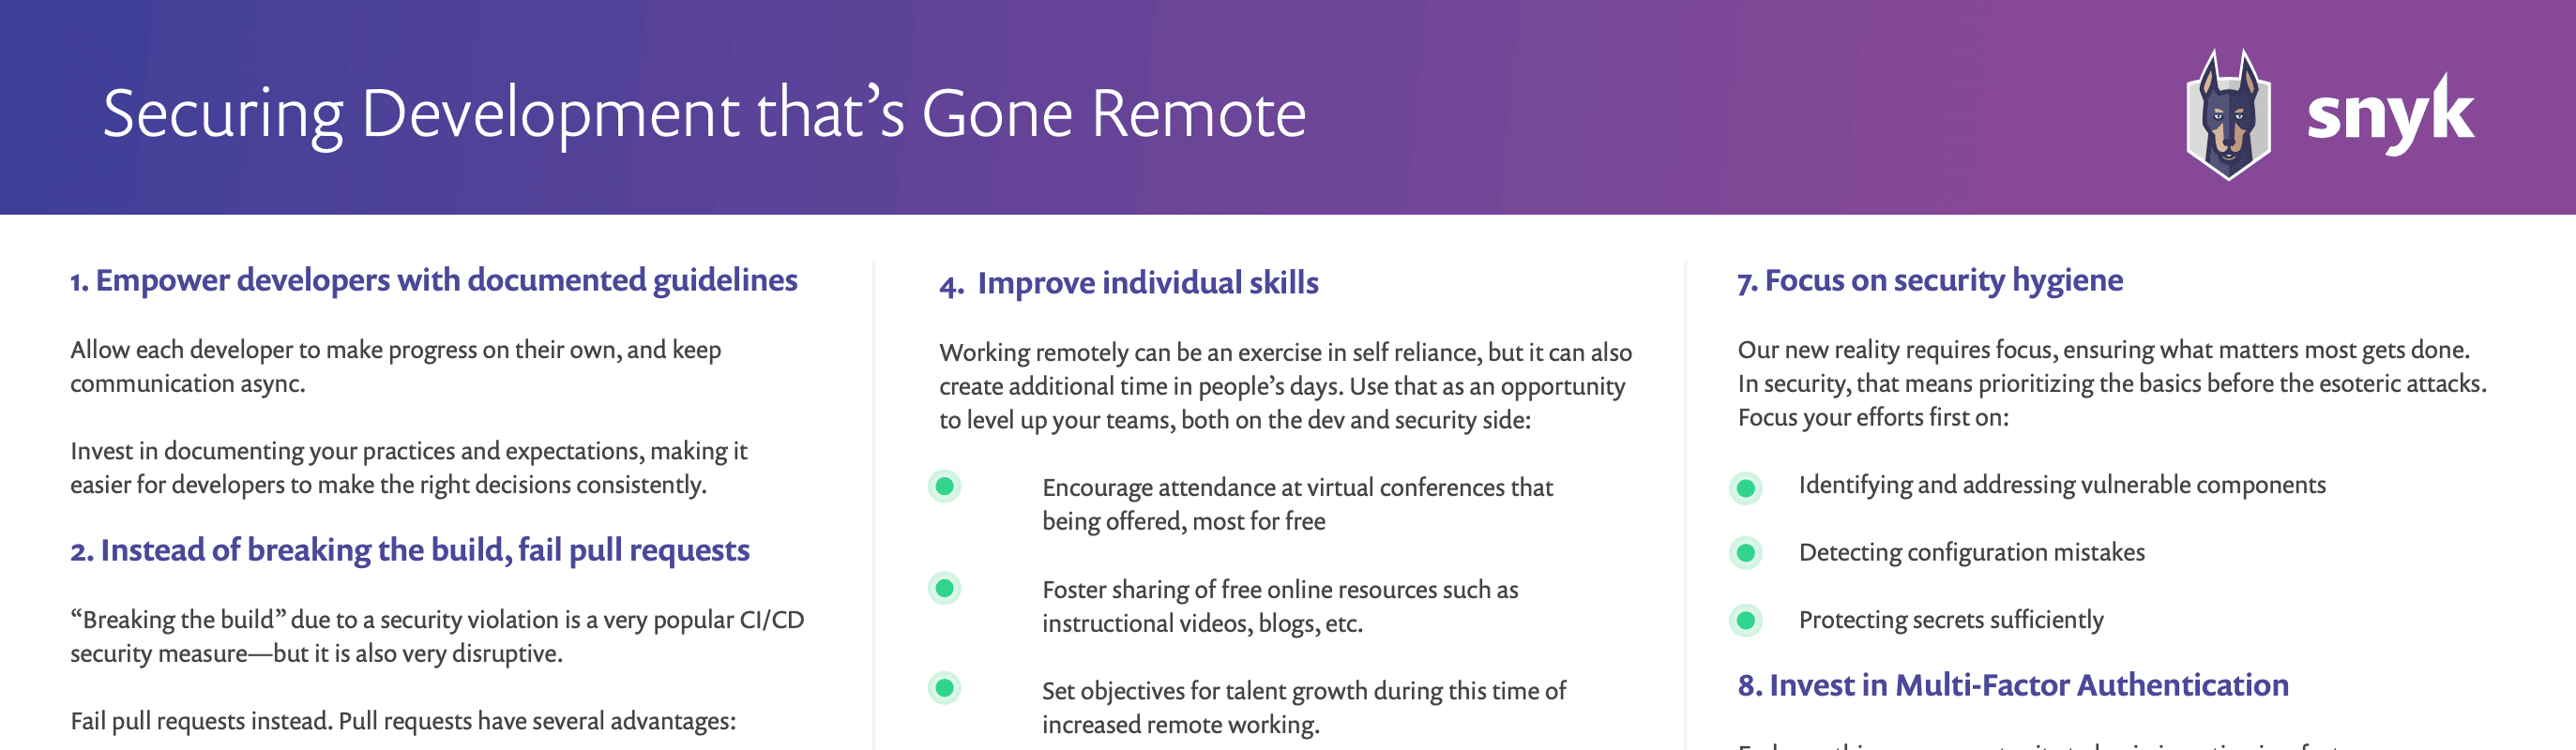 Preview of Securing Development that's Gone Remote cheatsheet